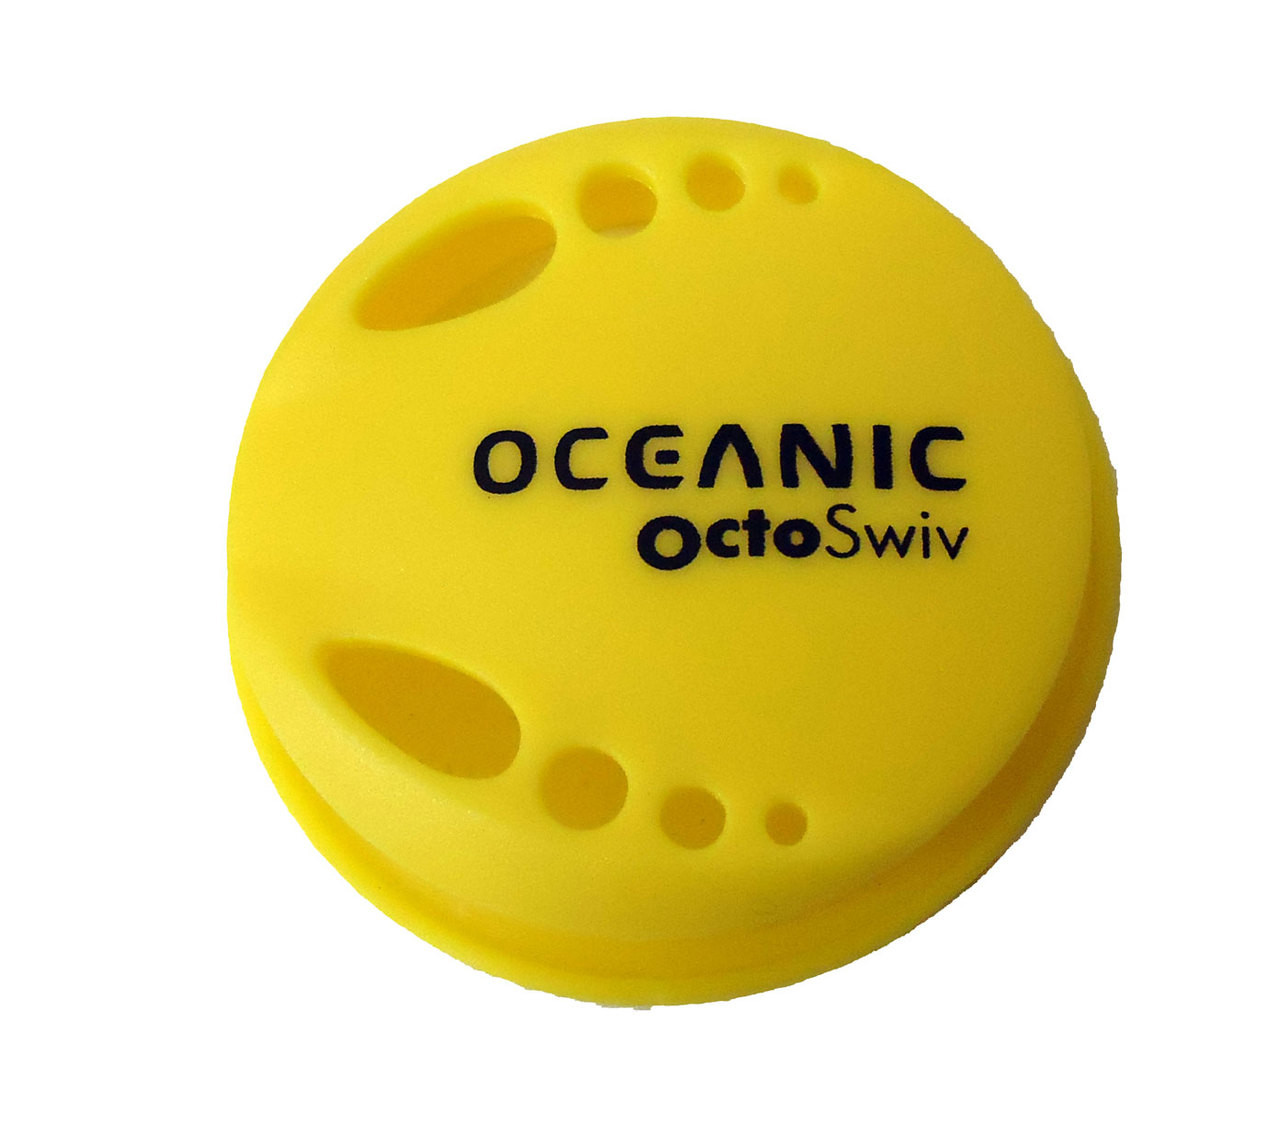 Oceanic Diaphragm Cover Second Stage Swiv Octo